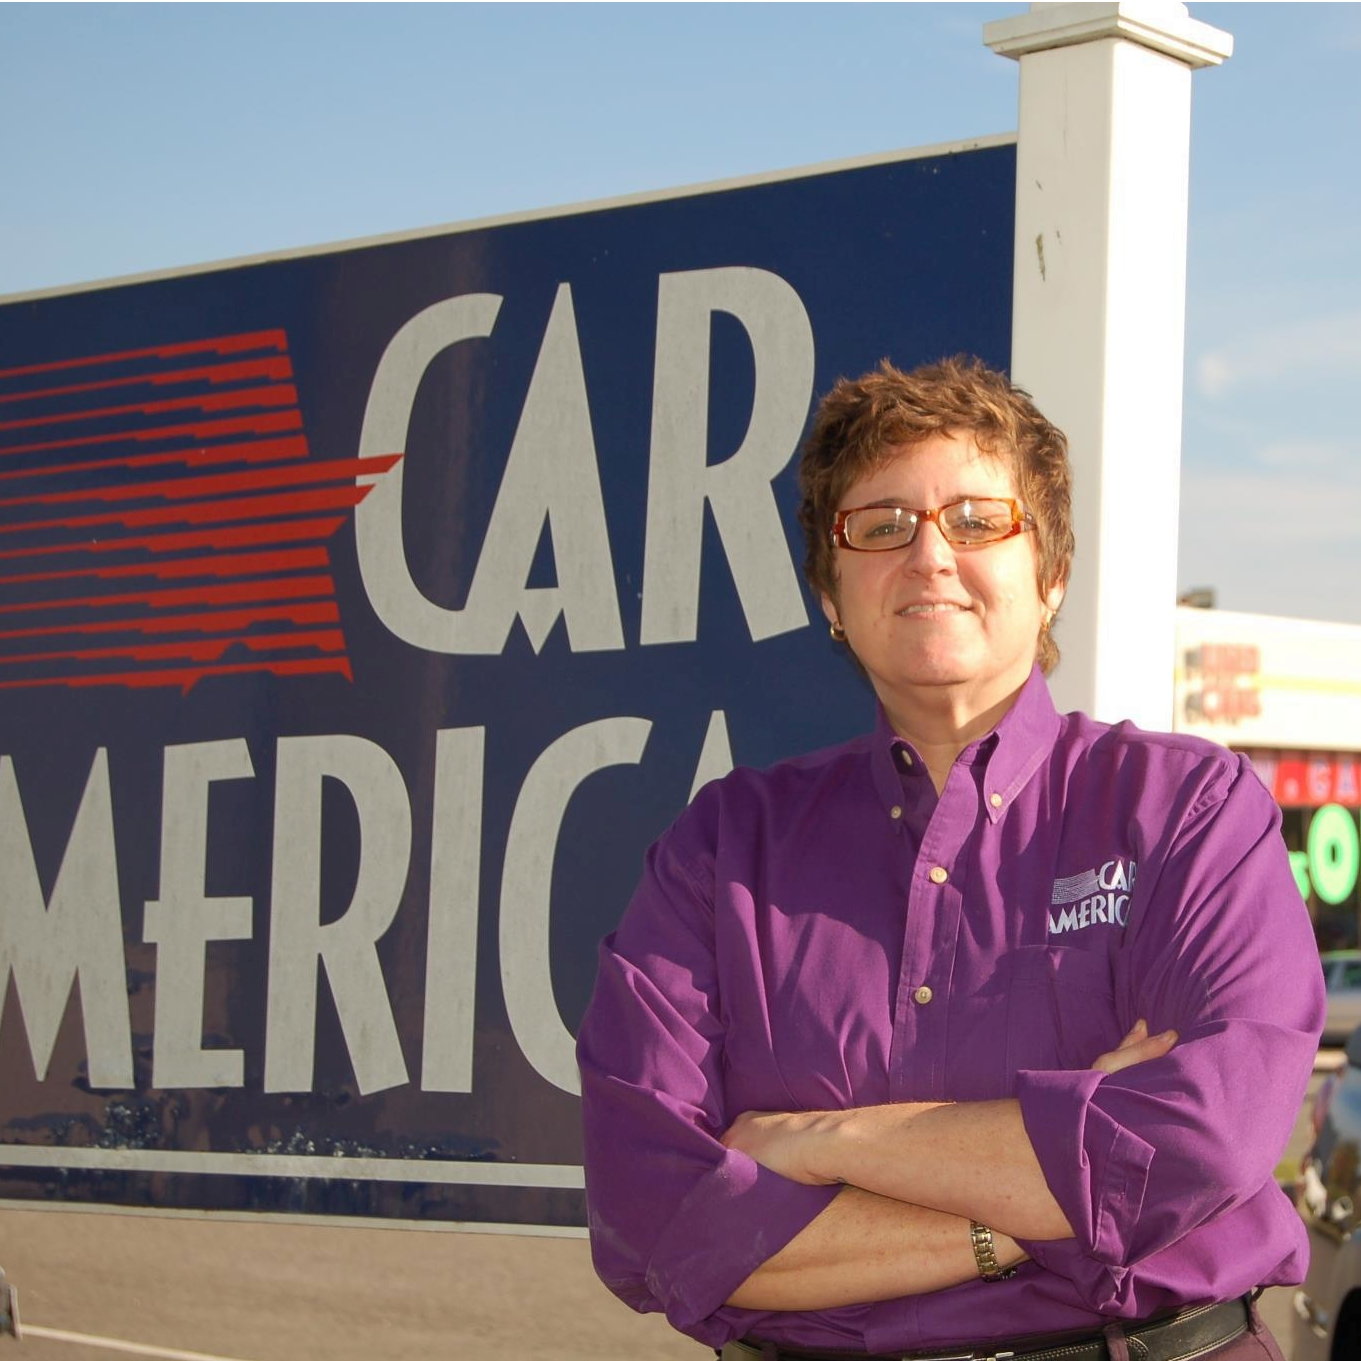 Used Car Dealer in VA Richmond 23225 Car America 7530 Midlothian Turnpike  (804)675-0100